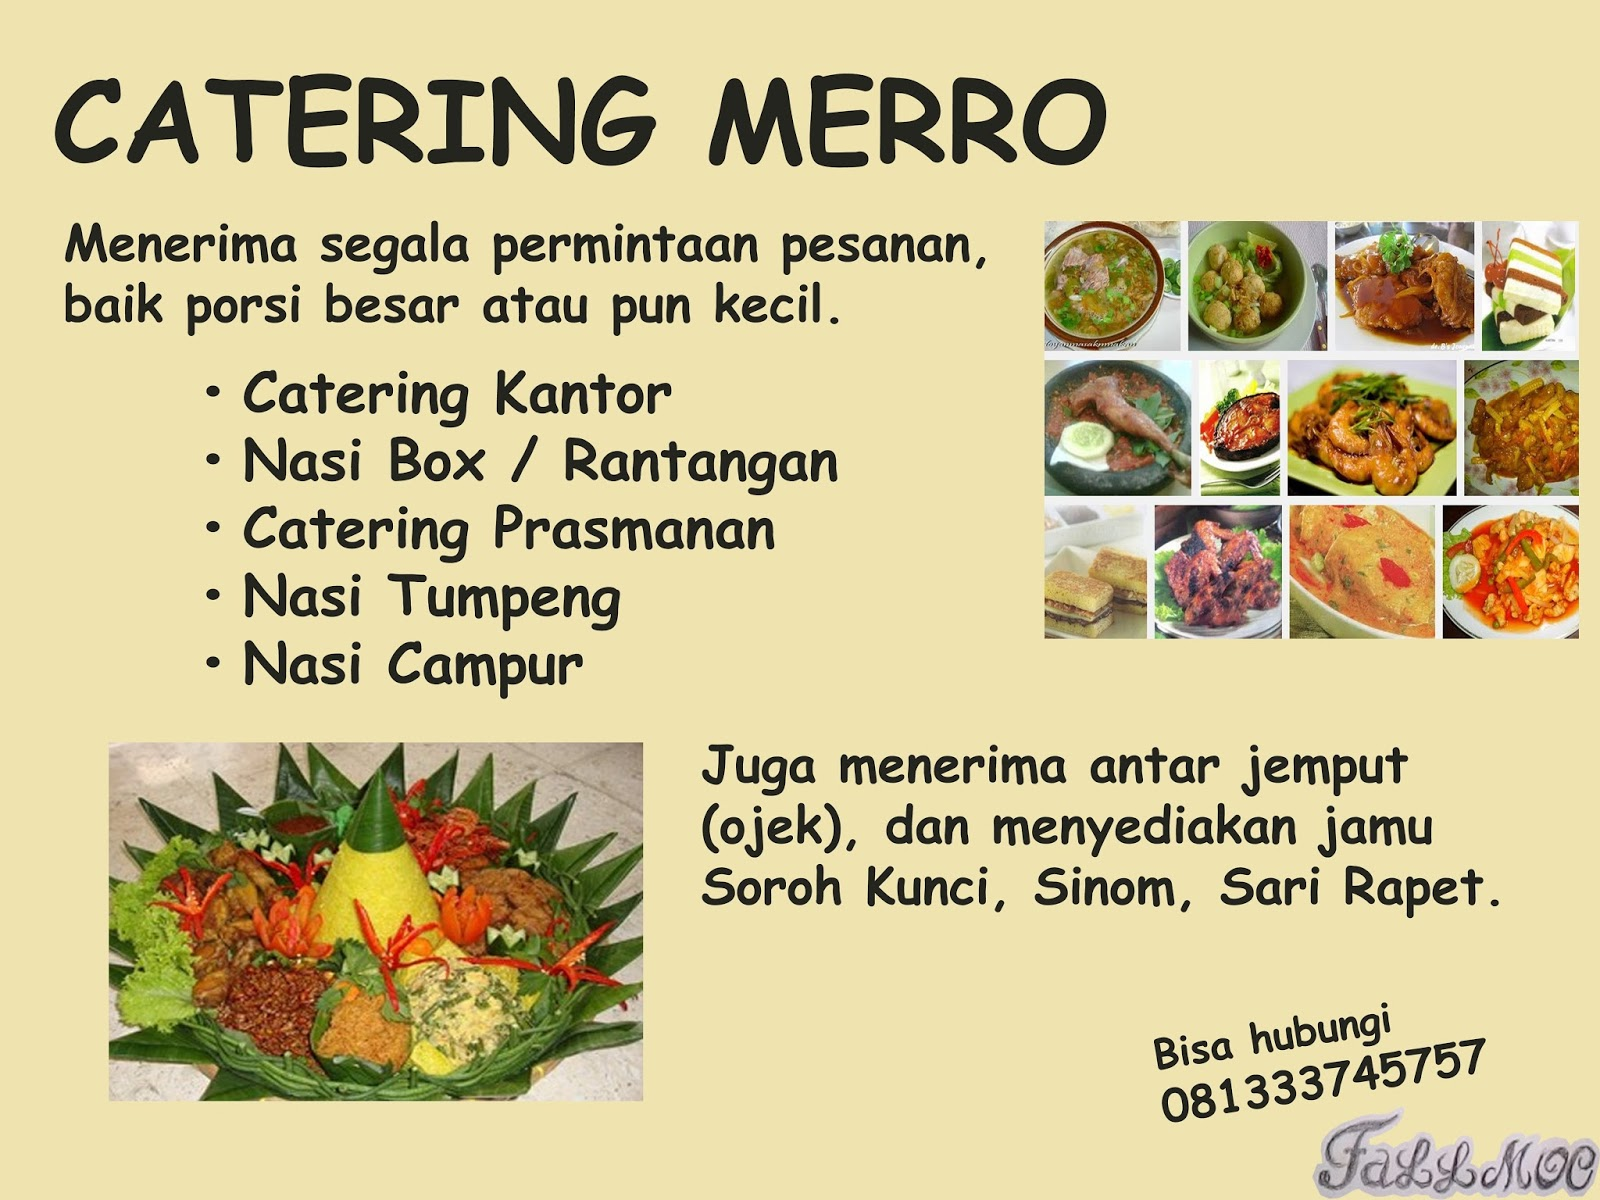 Contoh Banner: Banner Catering